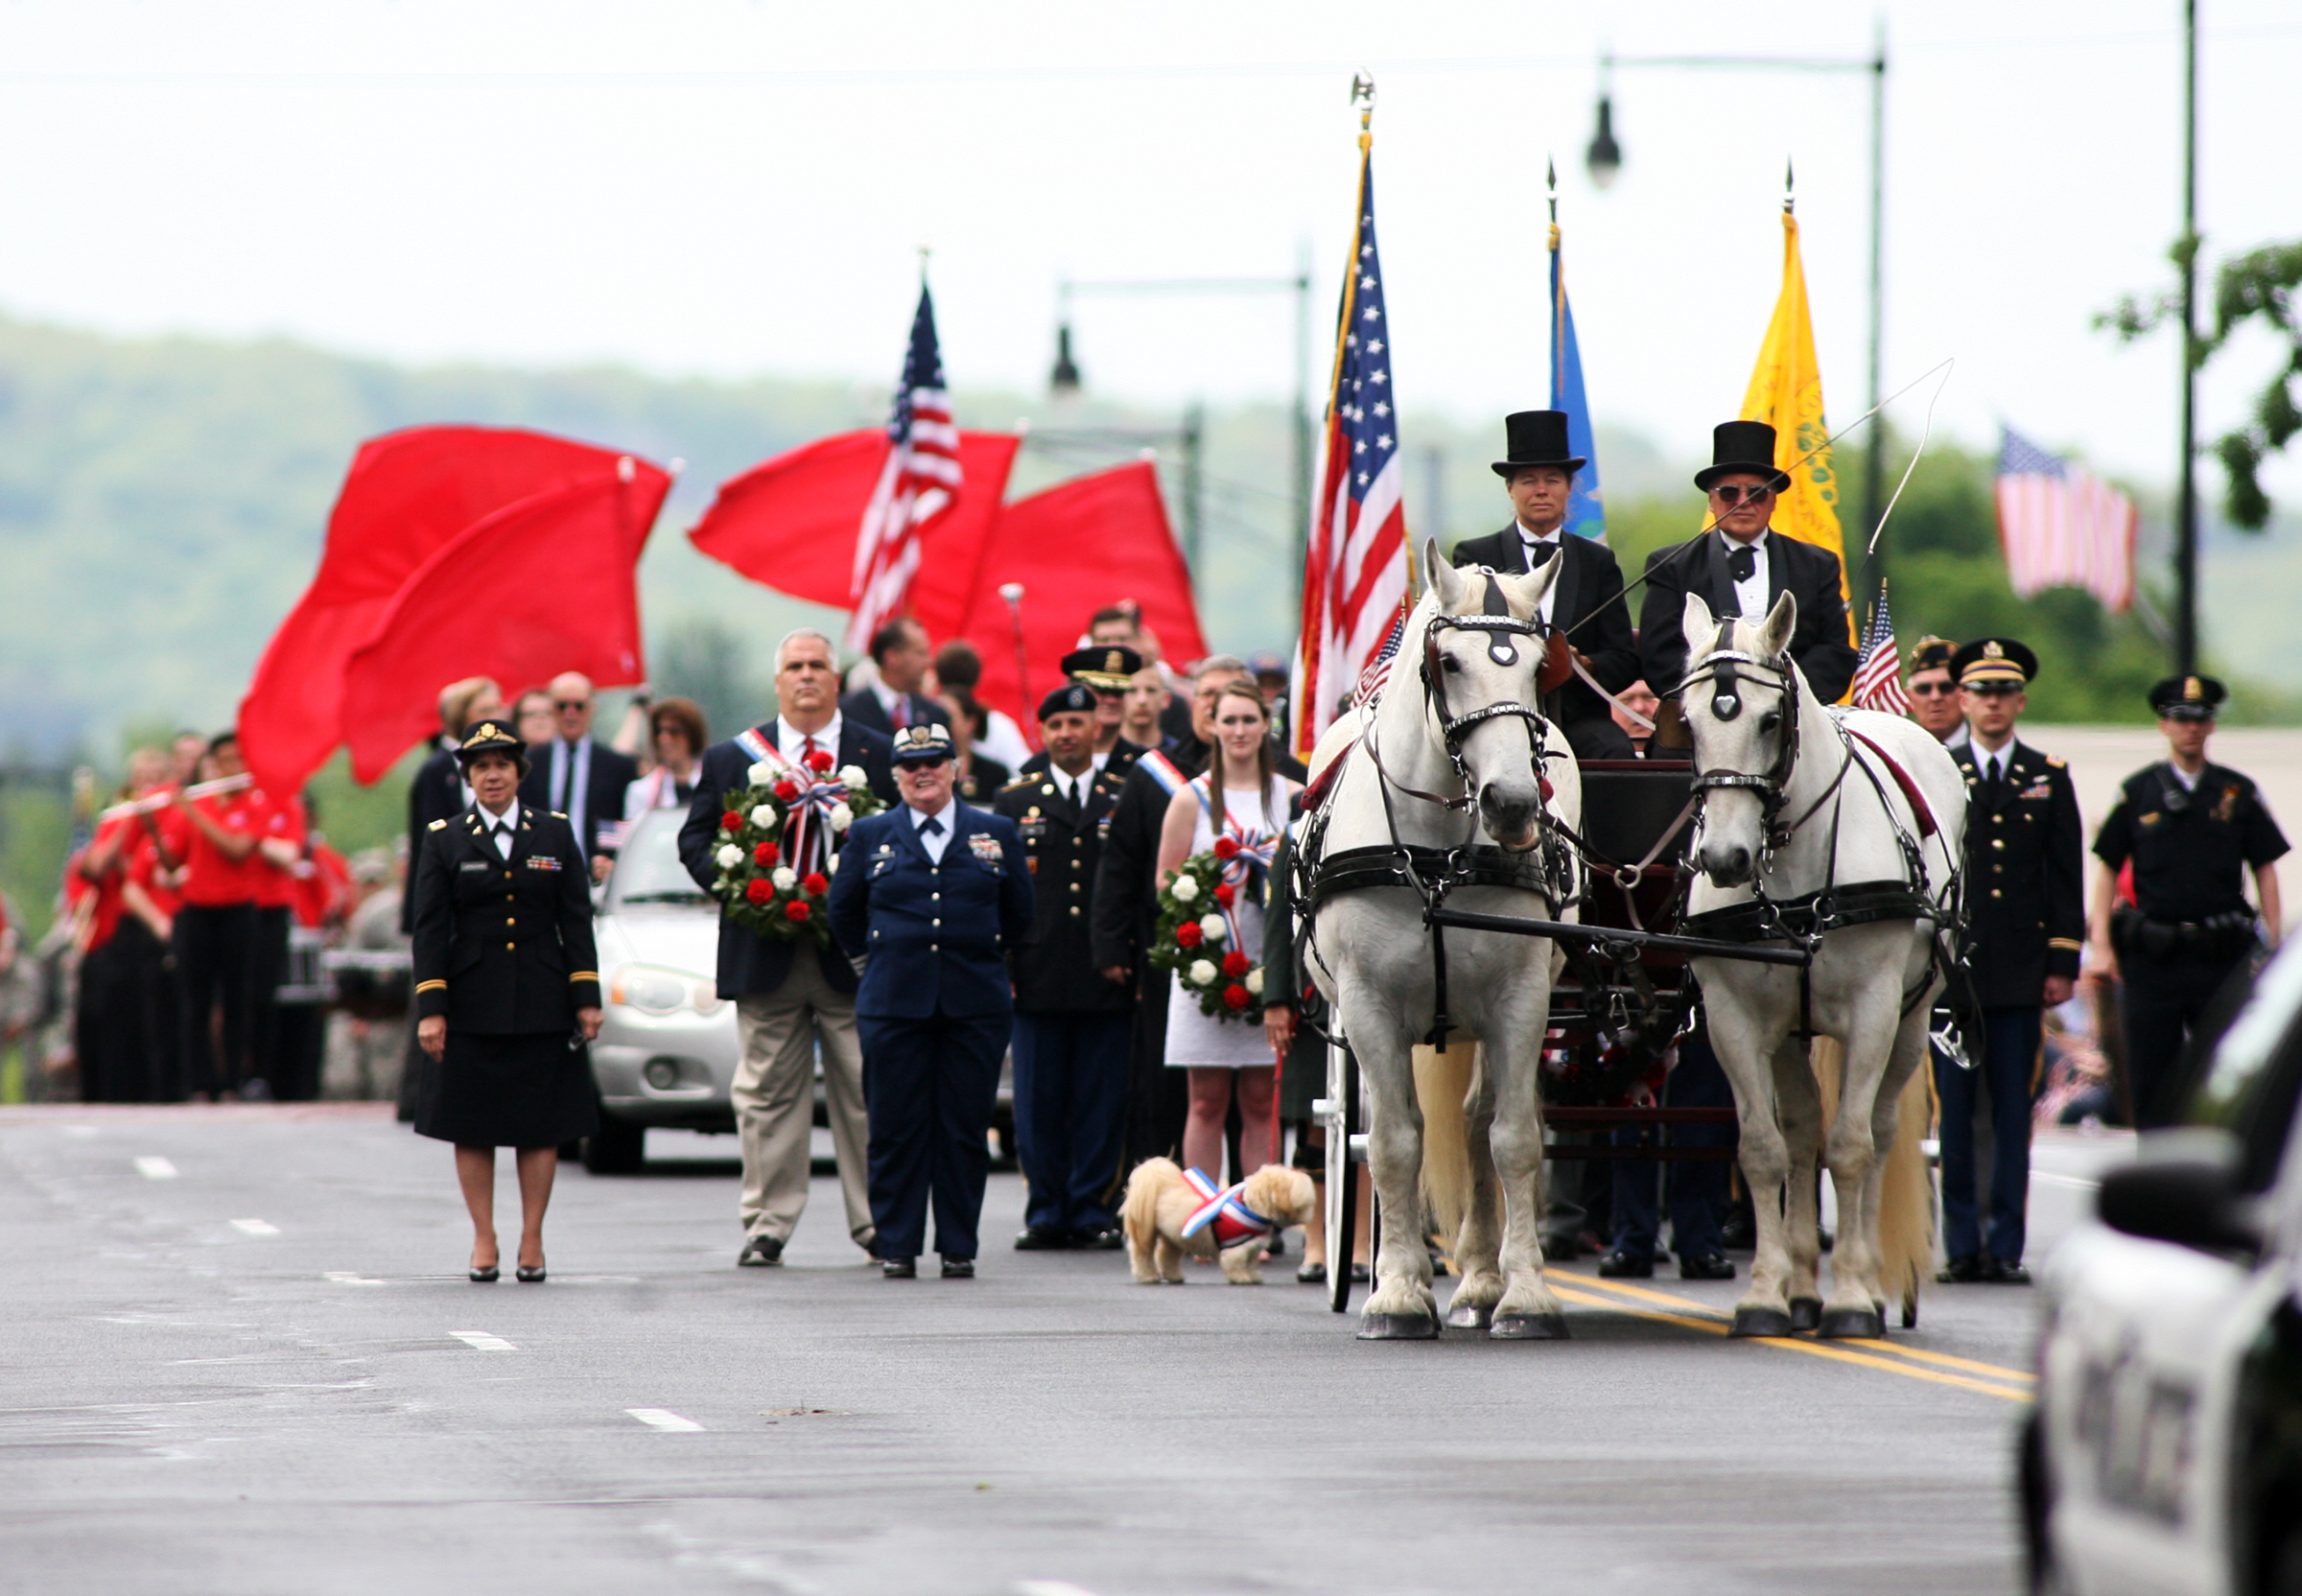 Dignitaries follow a horse drawn caisson carrying a casket representing war dead in Manchester's Memorial Day Parade Monday.